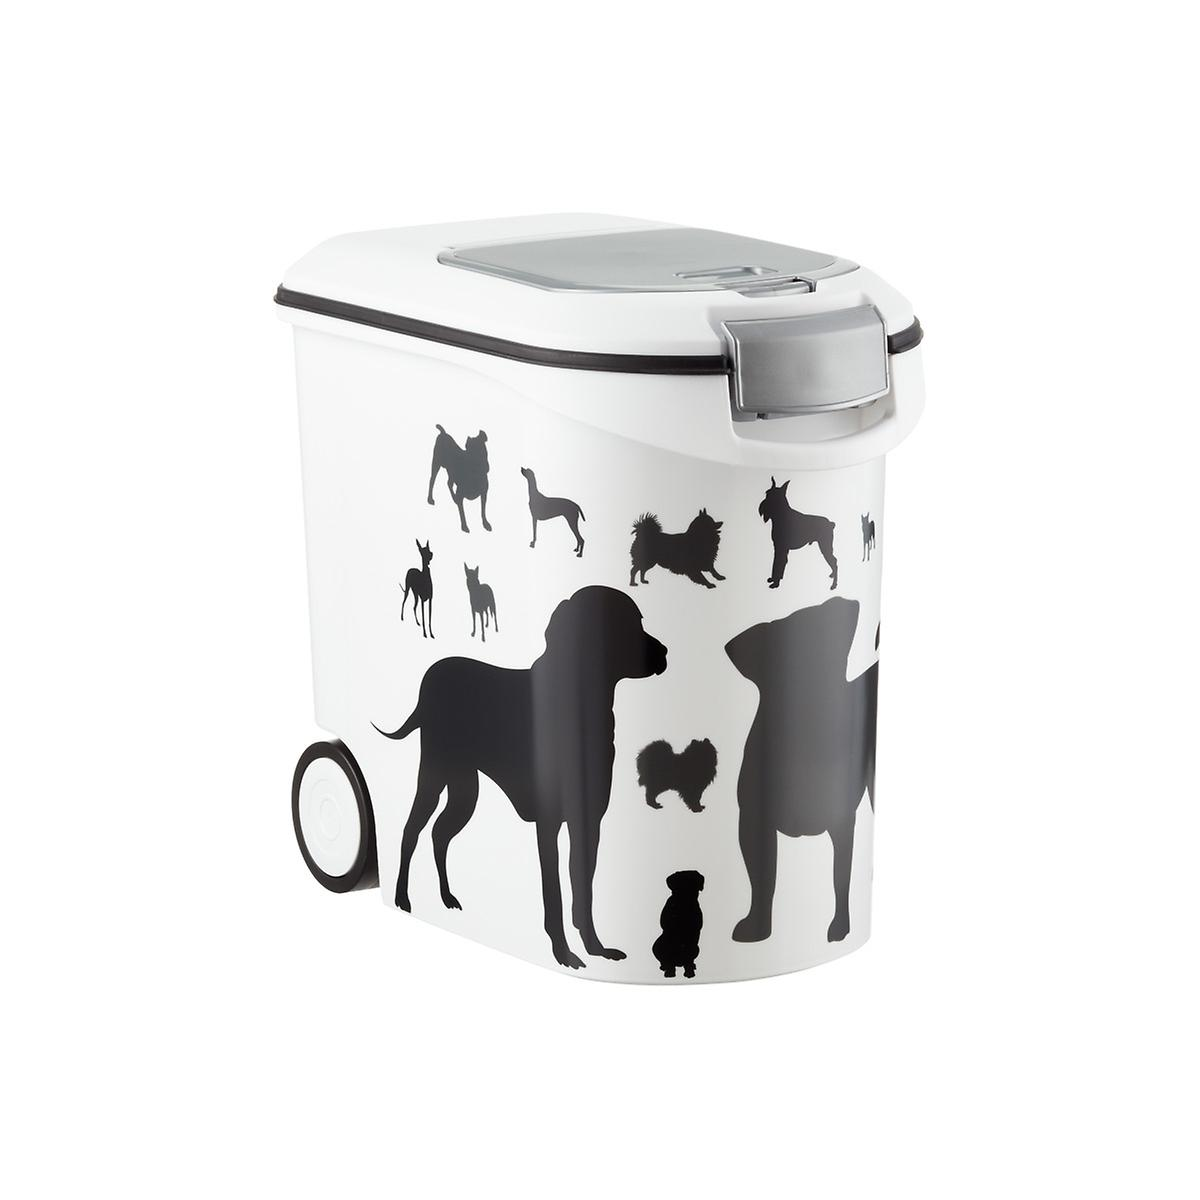 Kg Dry Dog Food Container